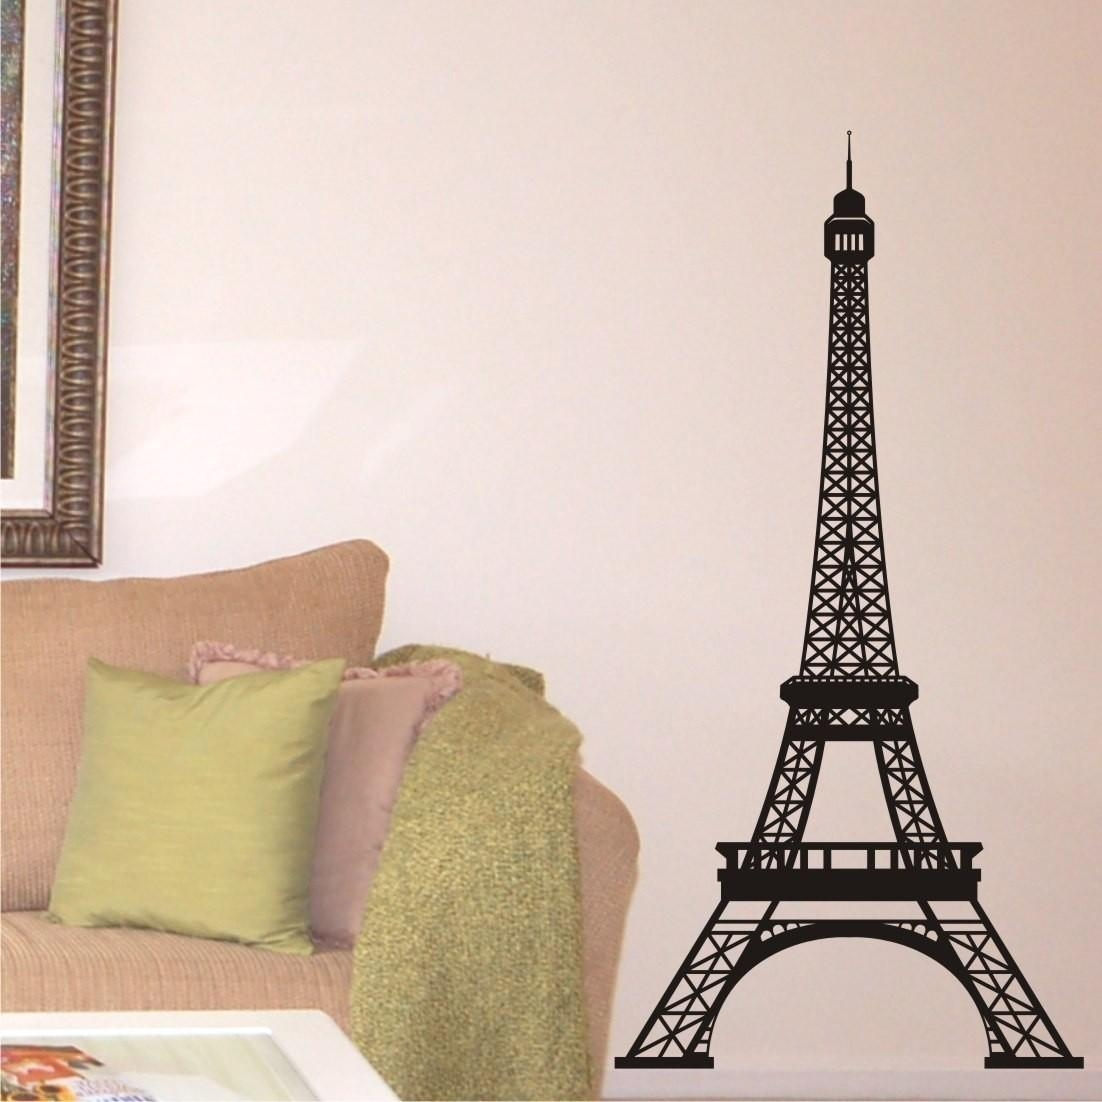 Wall Decor Eiffel Tower | New Interior Design In Eiffel Tower Wall Hanging Art (View 2 of 20)